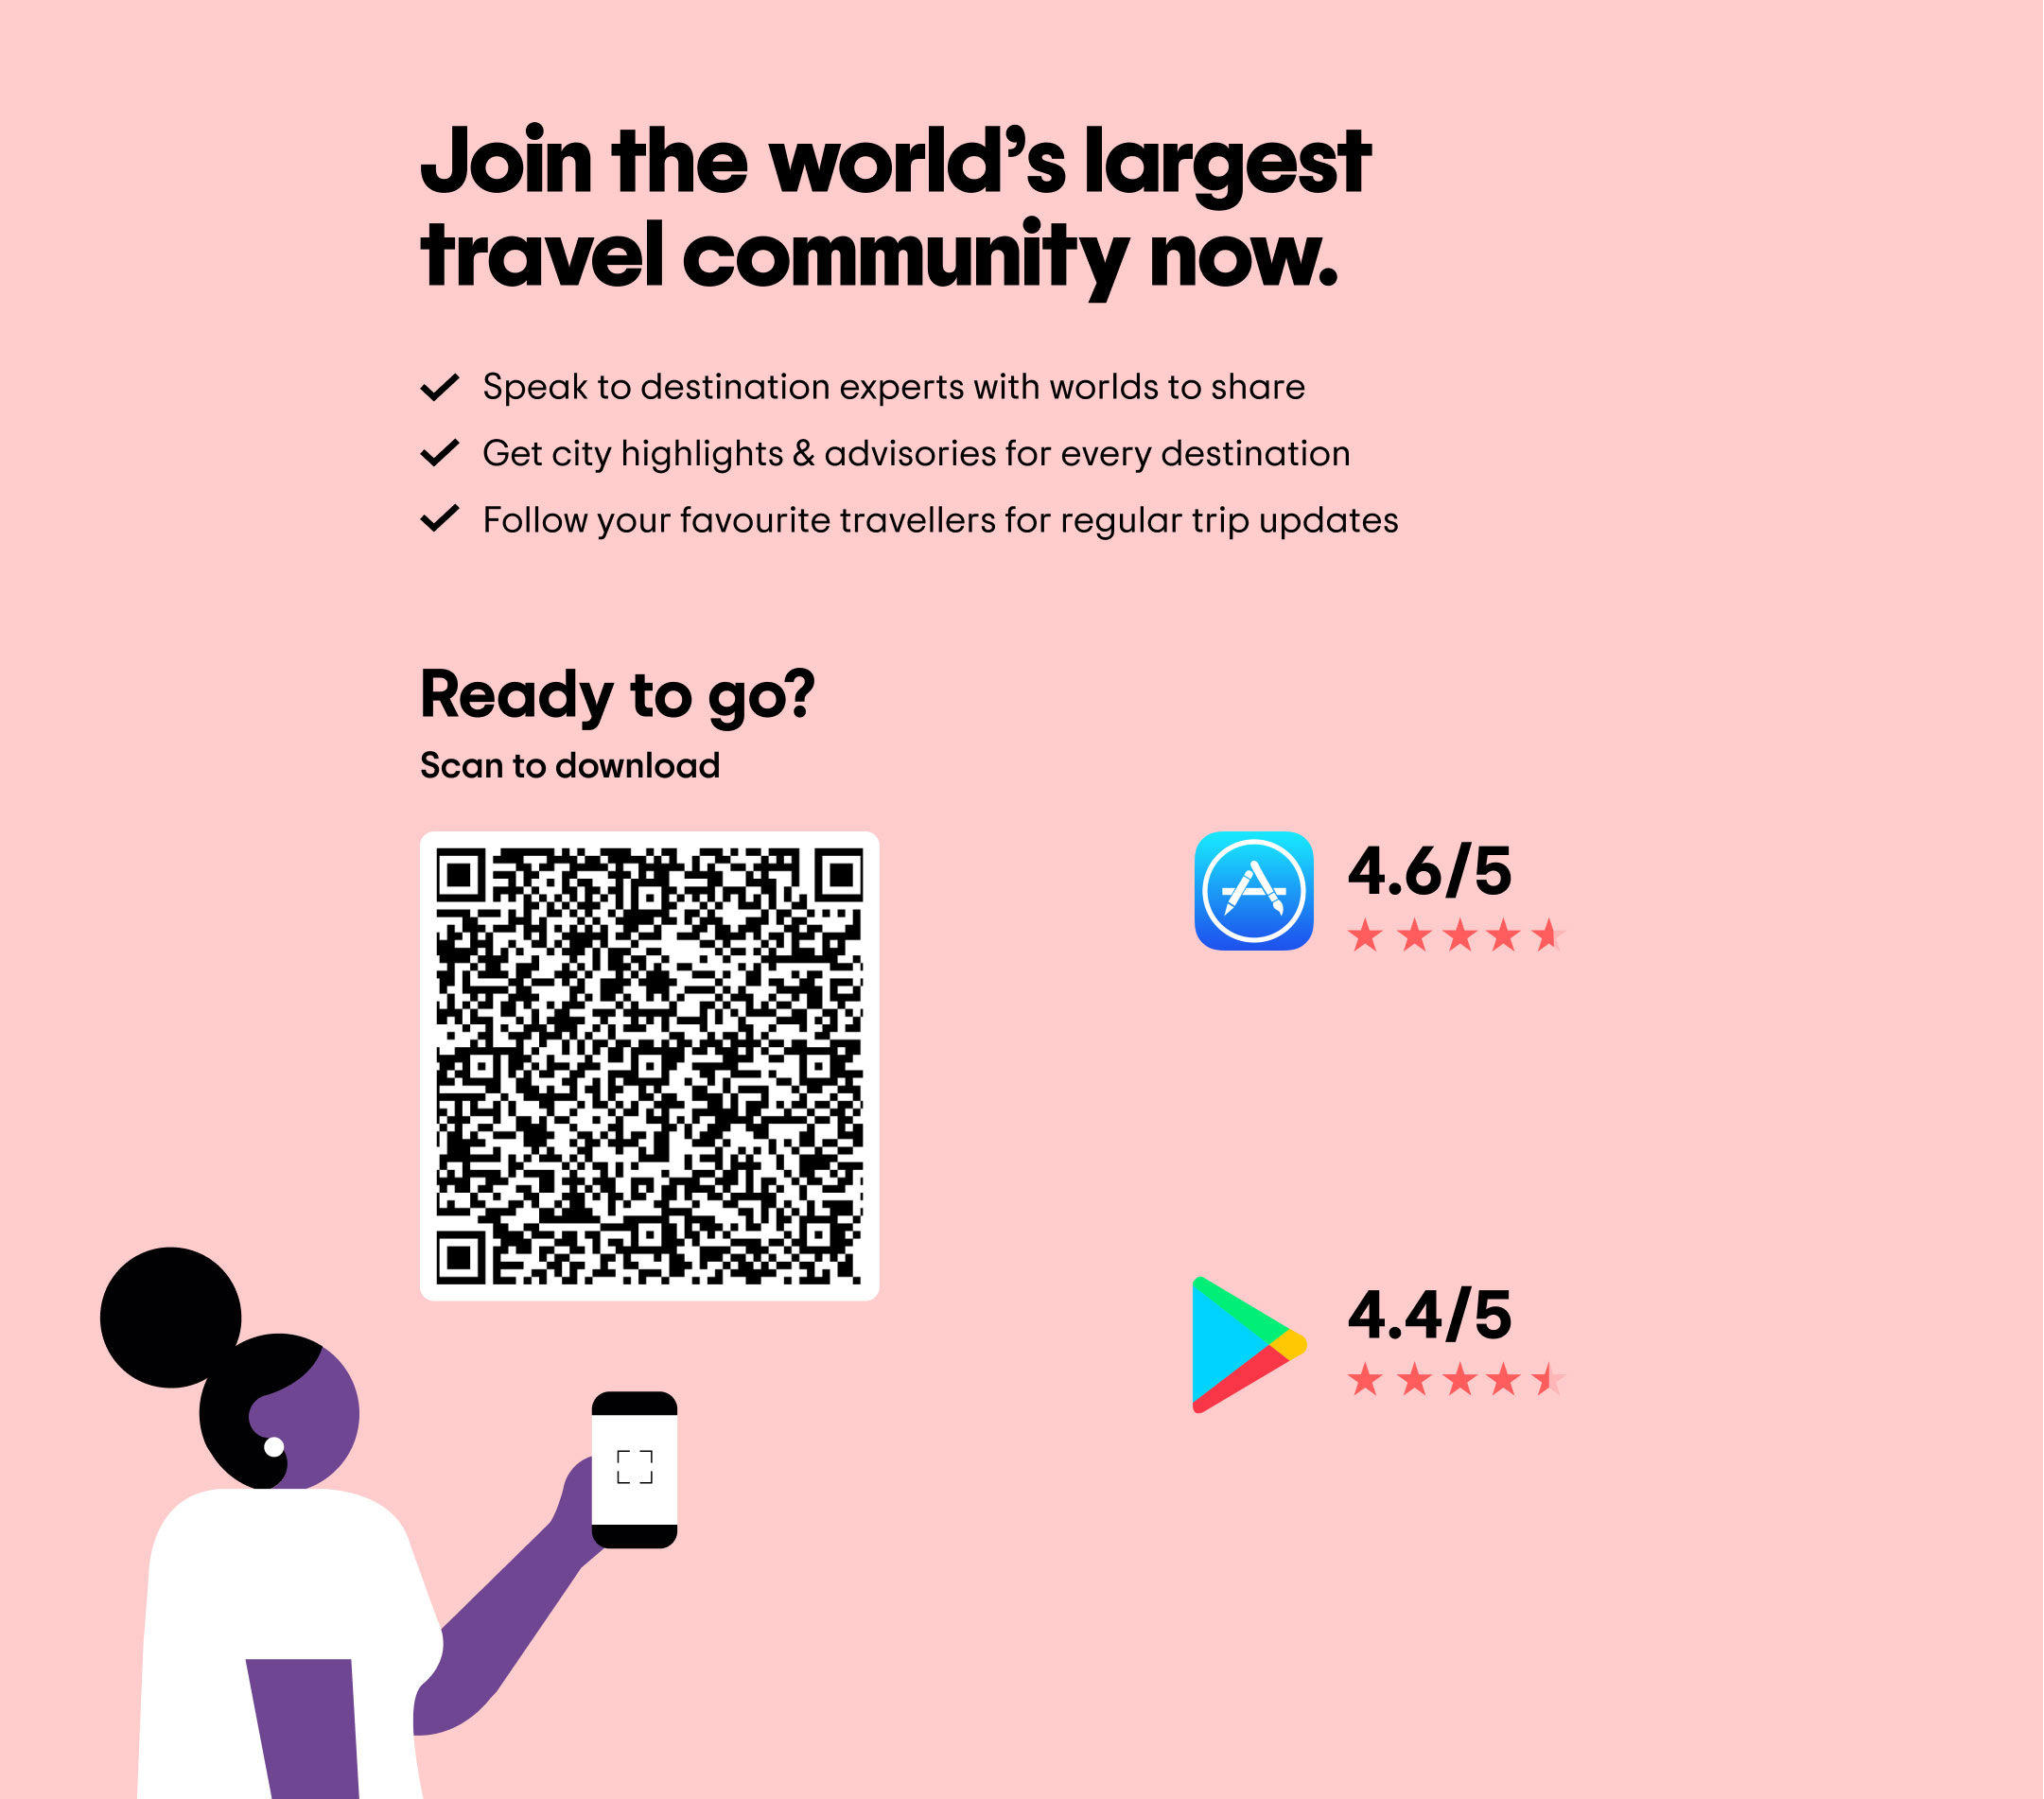 Join 463+ million travellers like you, and get the latest updates and advisories for destinations all around the world.